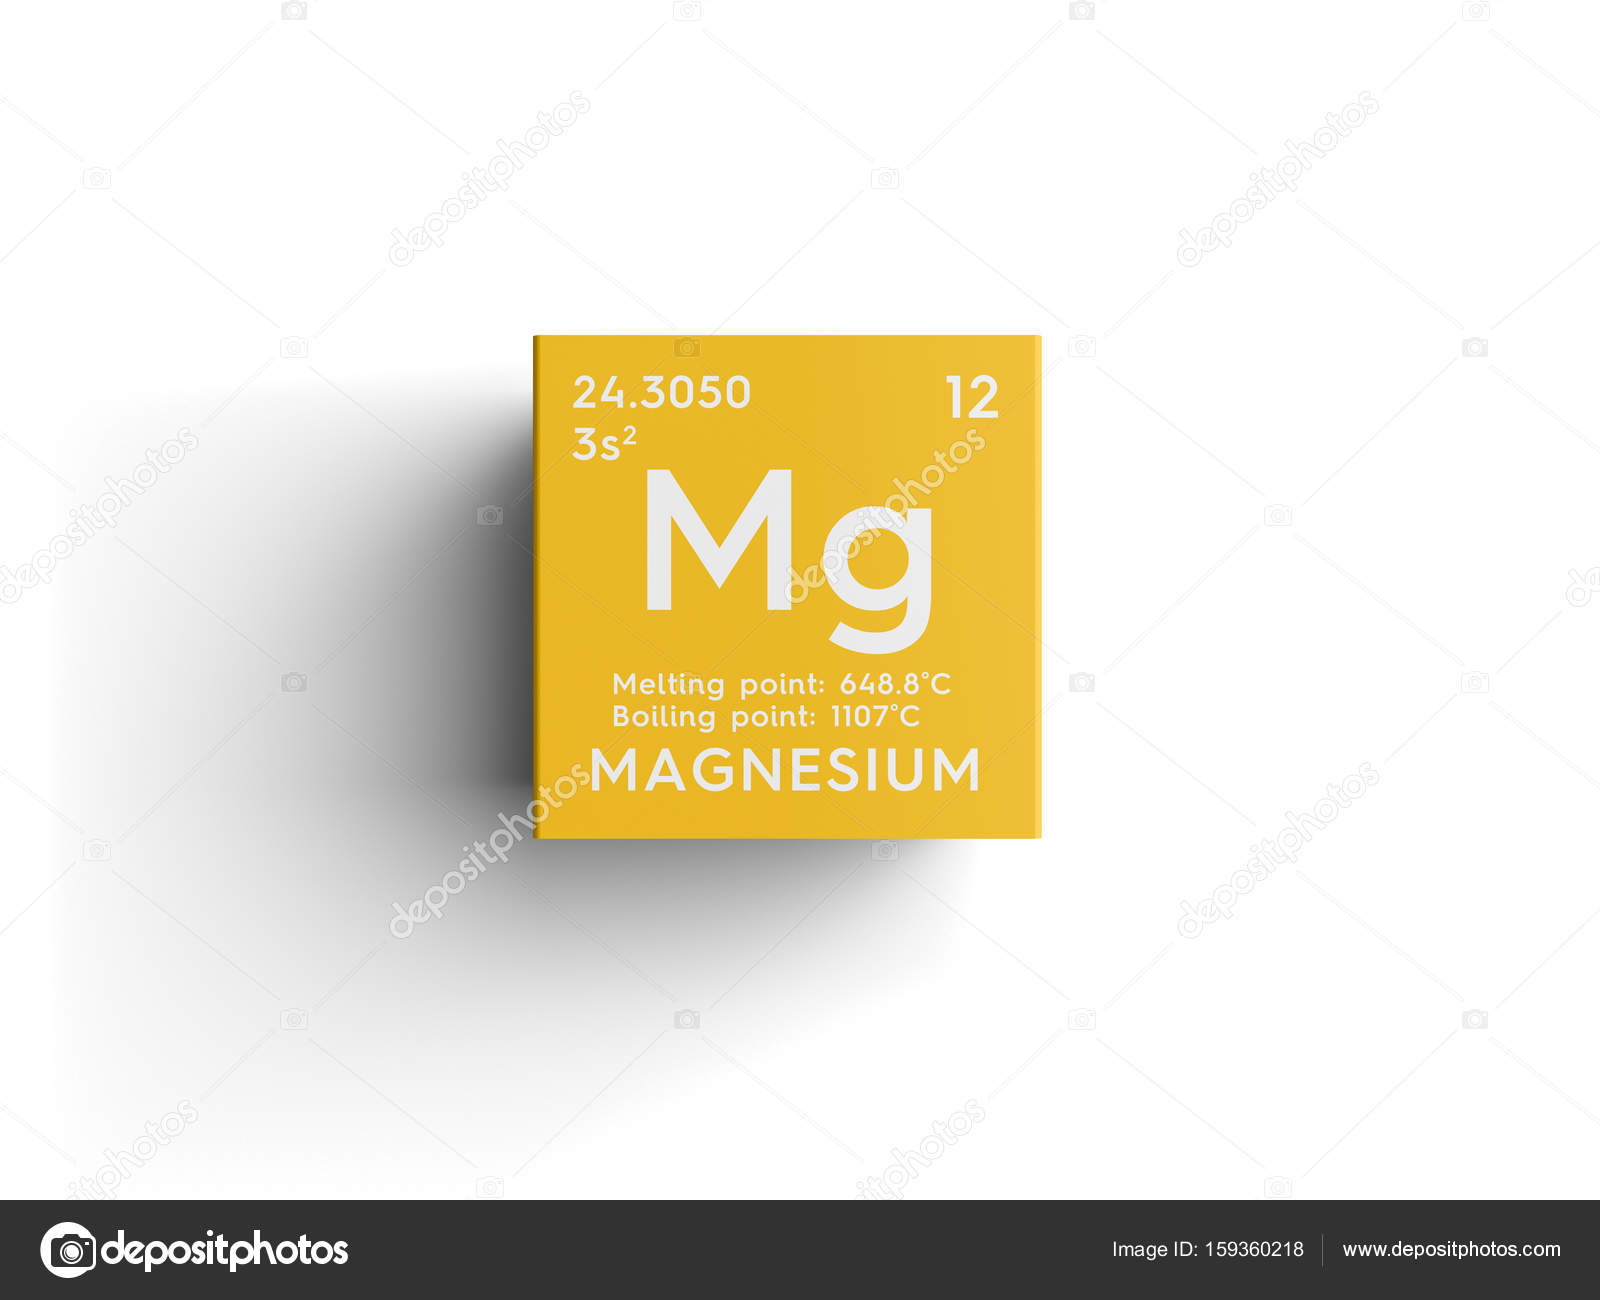 Magnesium alkaline earth metals chemical element of mendeleevs magnesium alkaline earth metals chemical element of mendeleevs periodic table stock photo urtaz Image collections